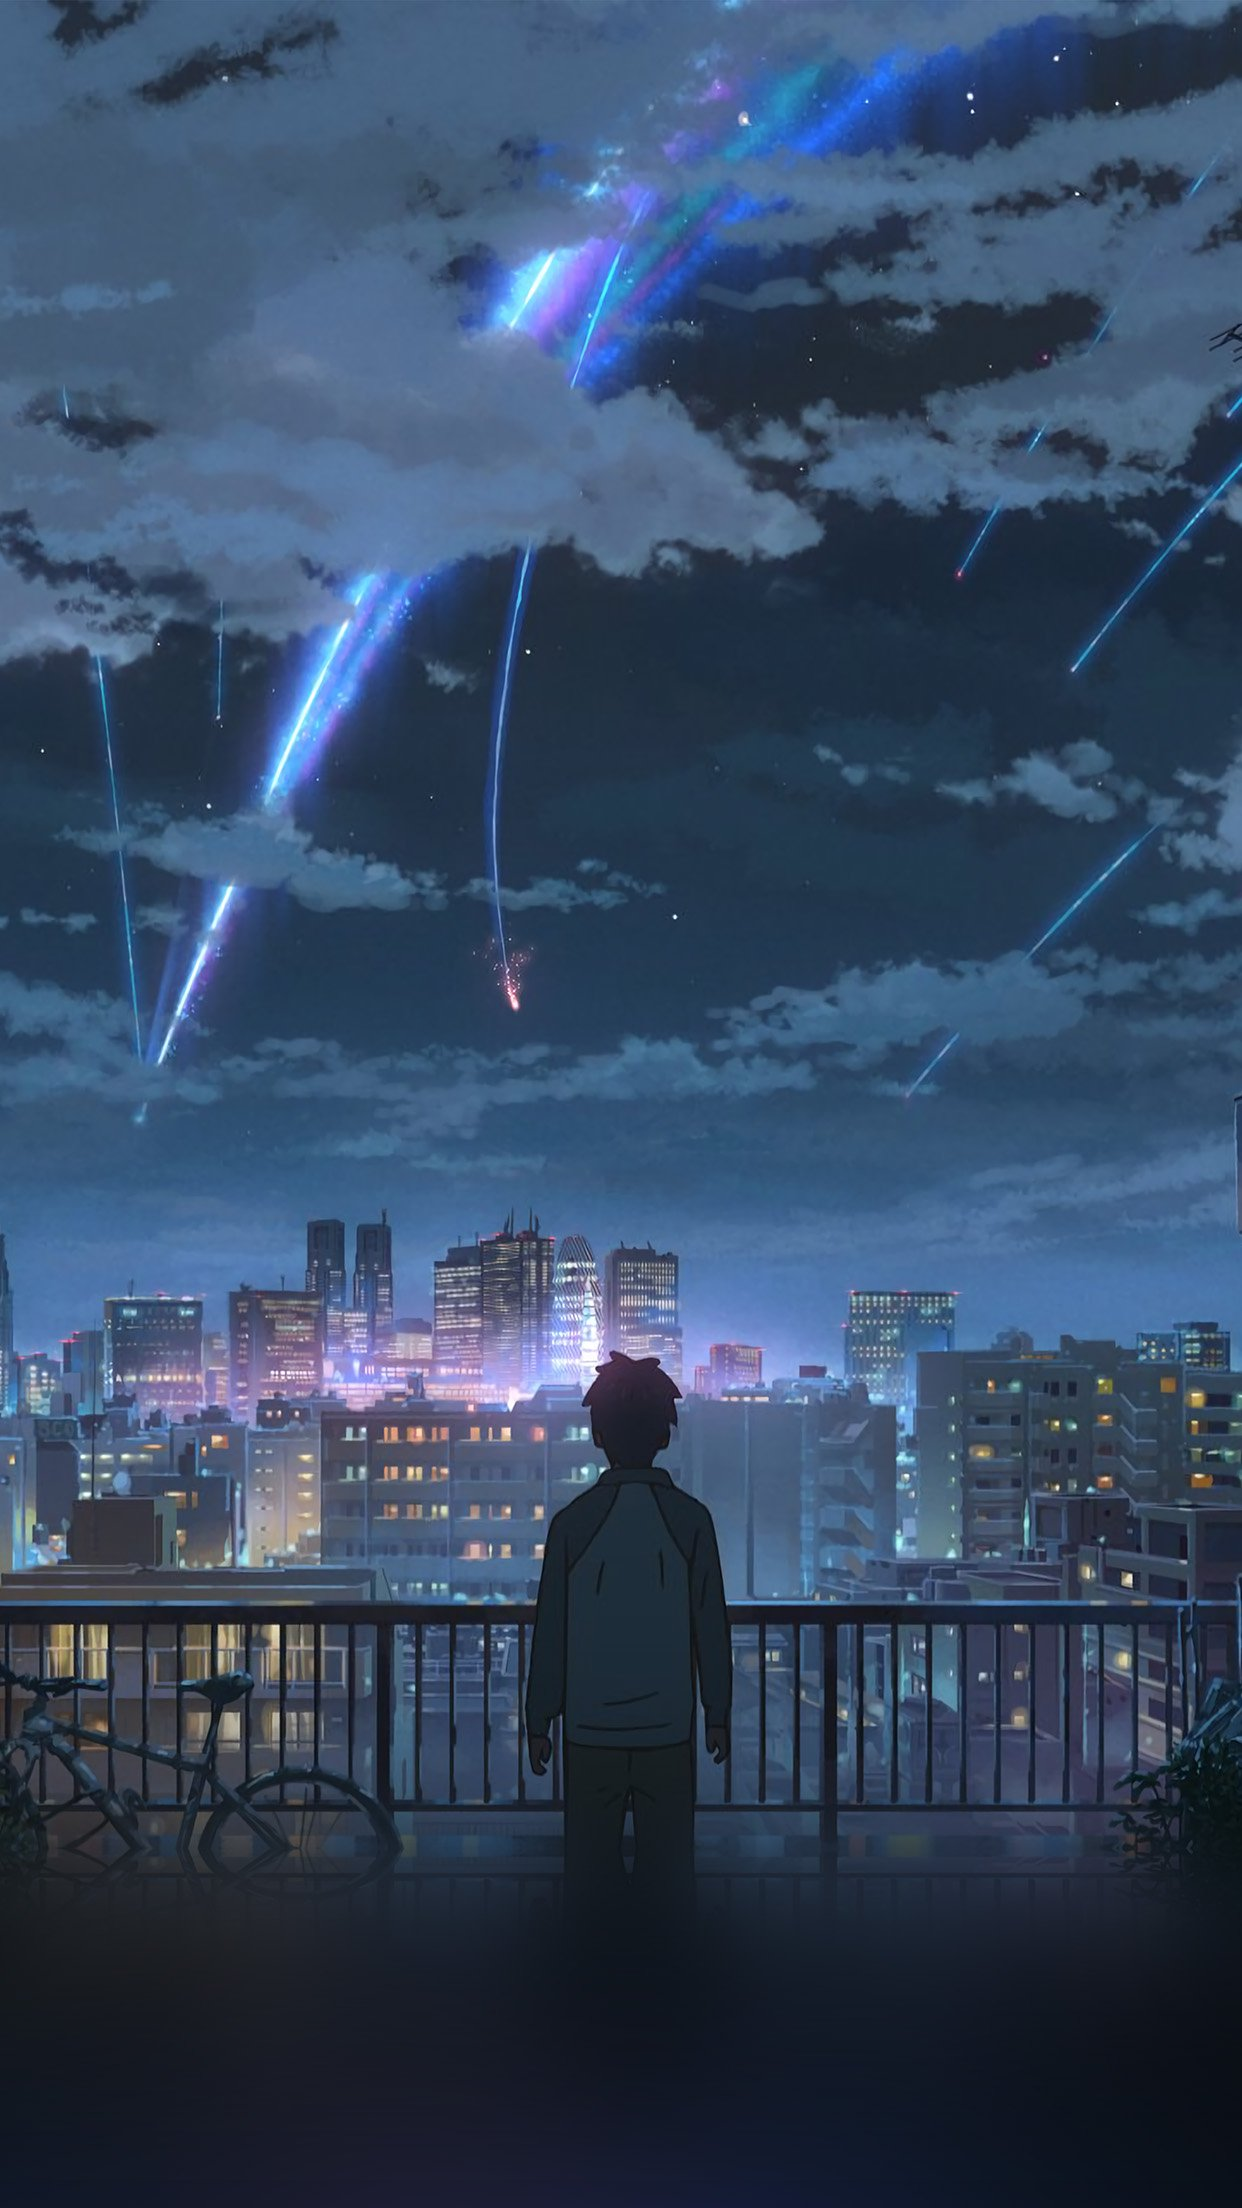 Your Name Live Wallpaper Gif : wallpaper, Flares, Yourname, Anime, Android, Wallpaper, Iphone, 1242x2208, Teahub.io